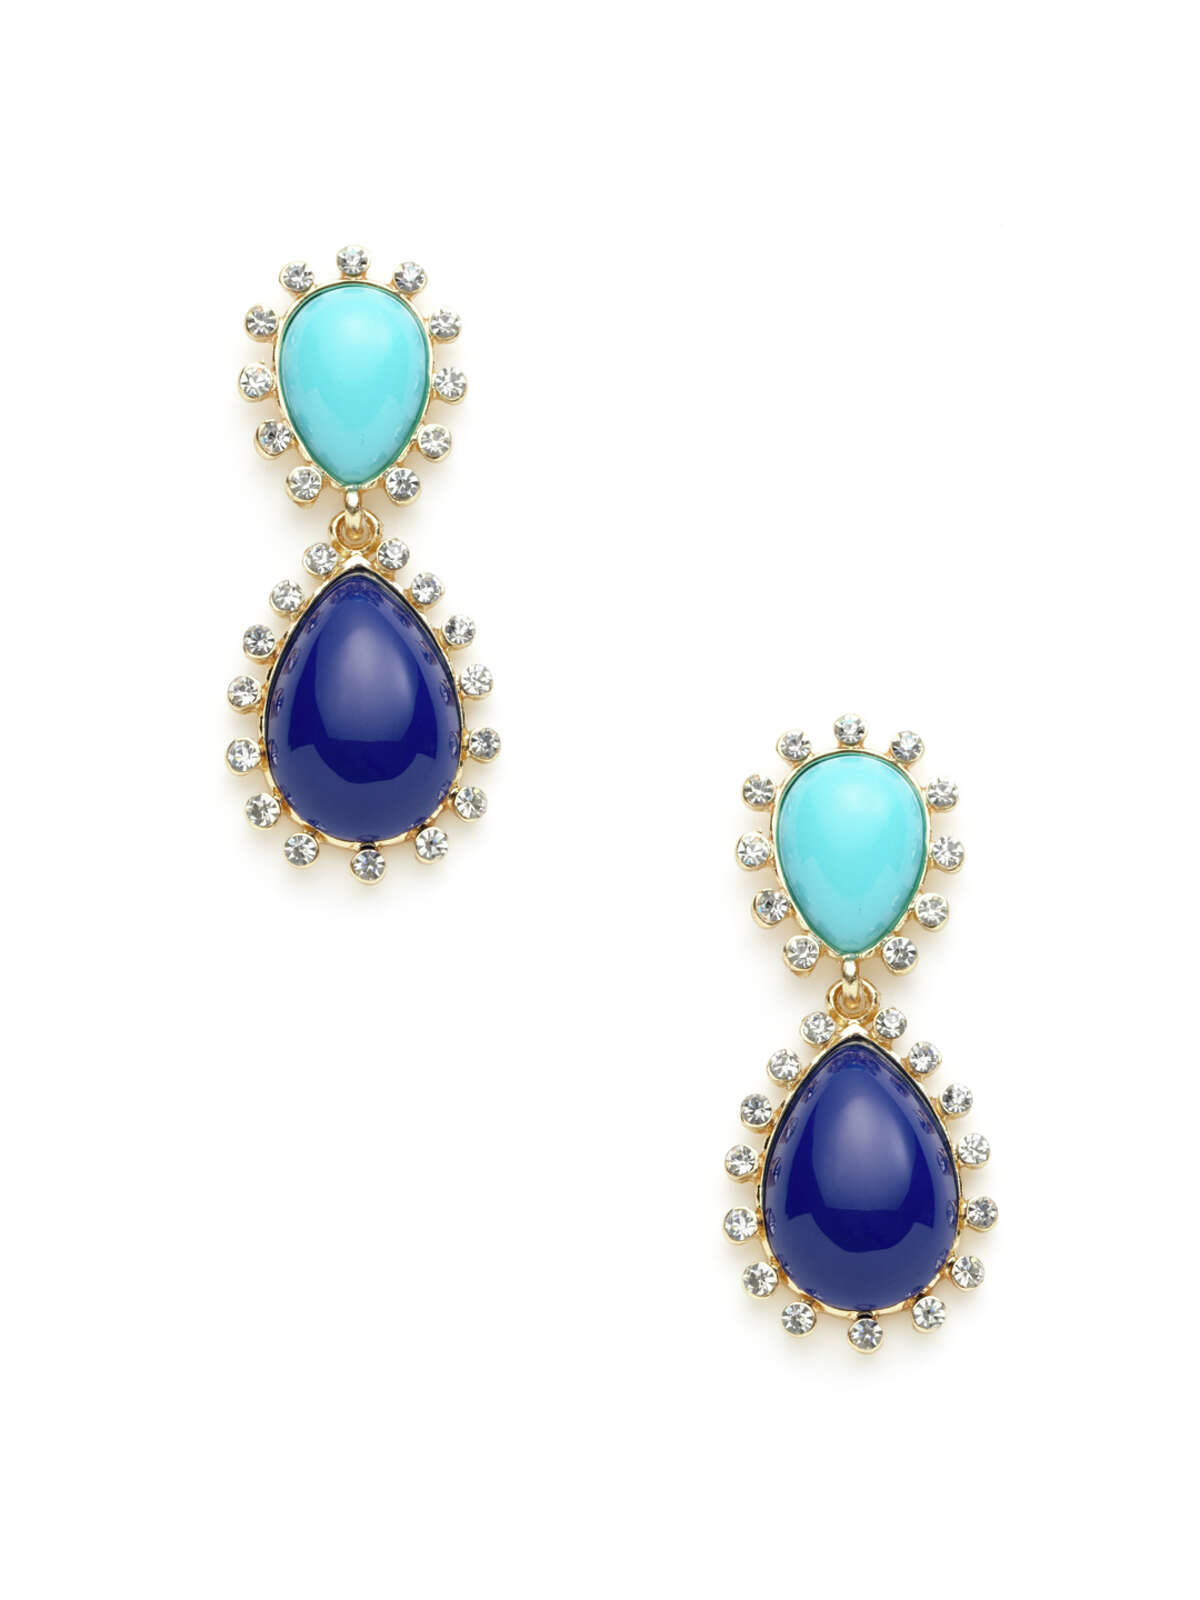 Kenneth Jay Lane lapis and turquoise earrings